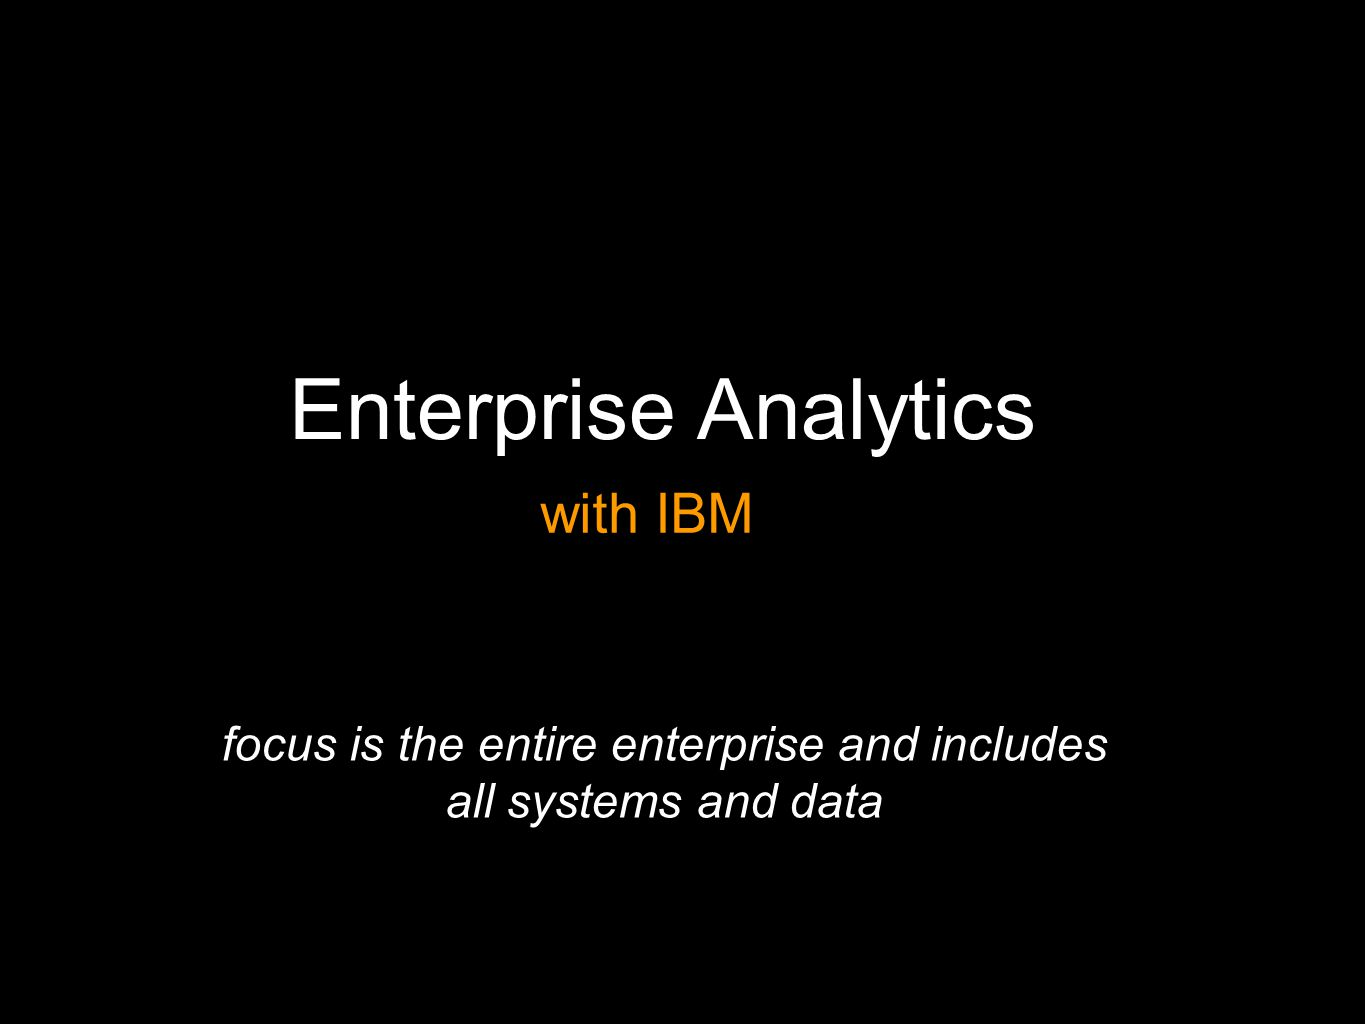 Enterprise Analytics focus is the entire enterprise and includes all systems and data with IBM